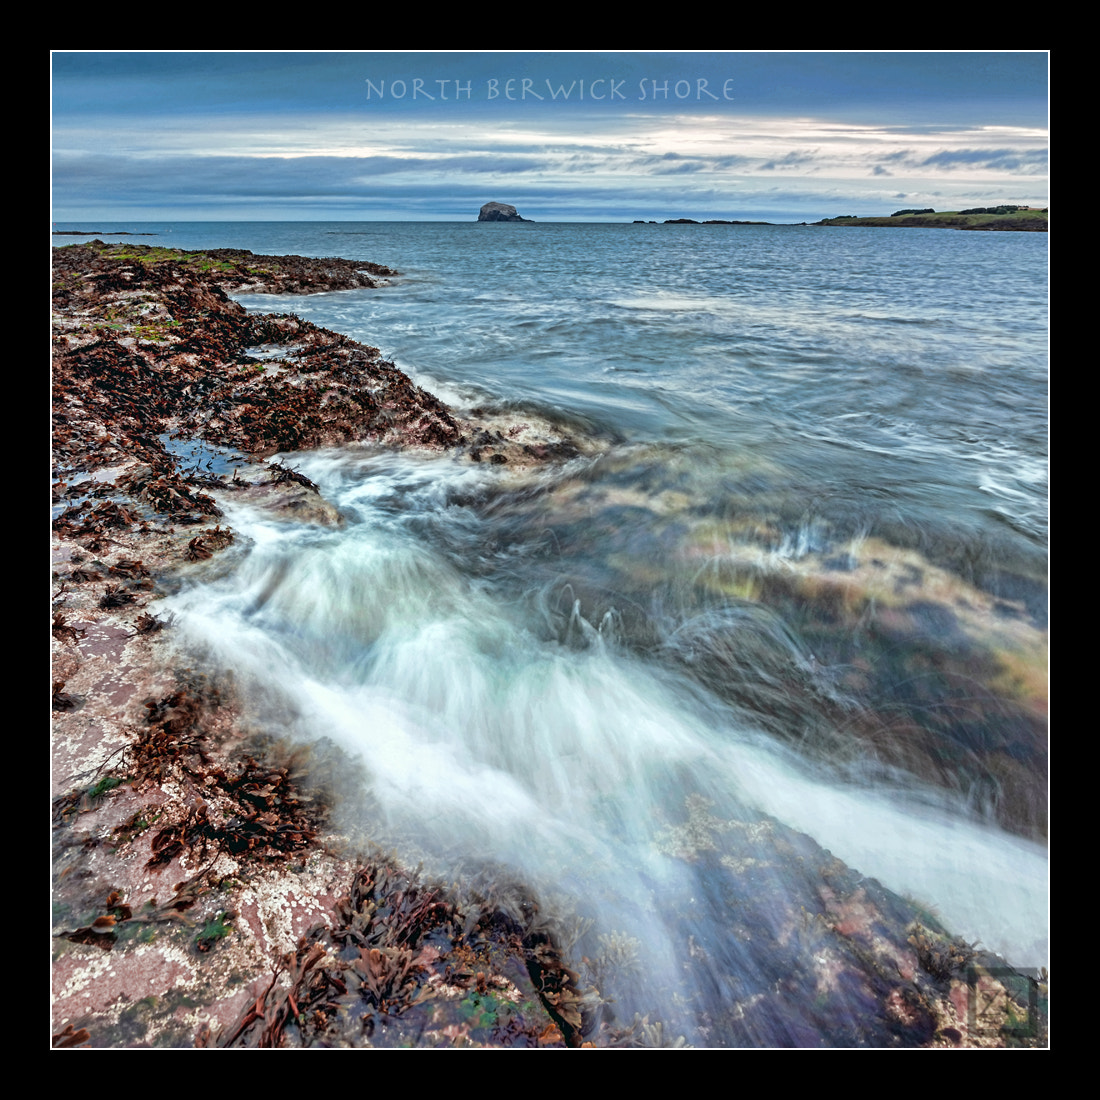 Photograph North Berwick Shore by Zain Kapasi on 500px